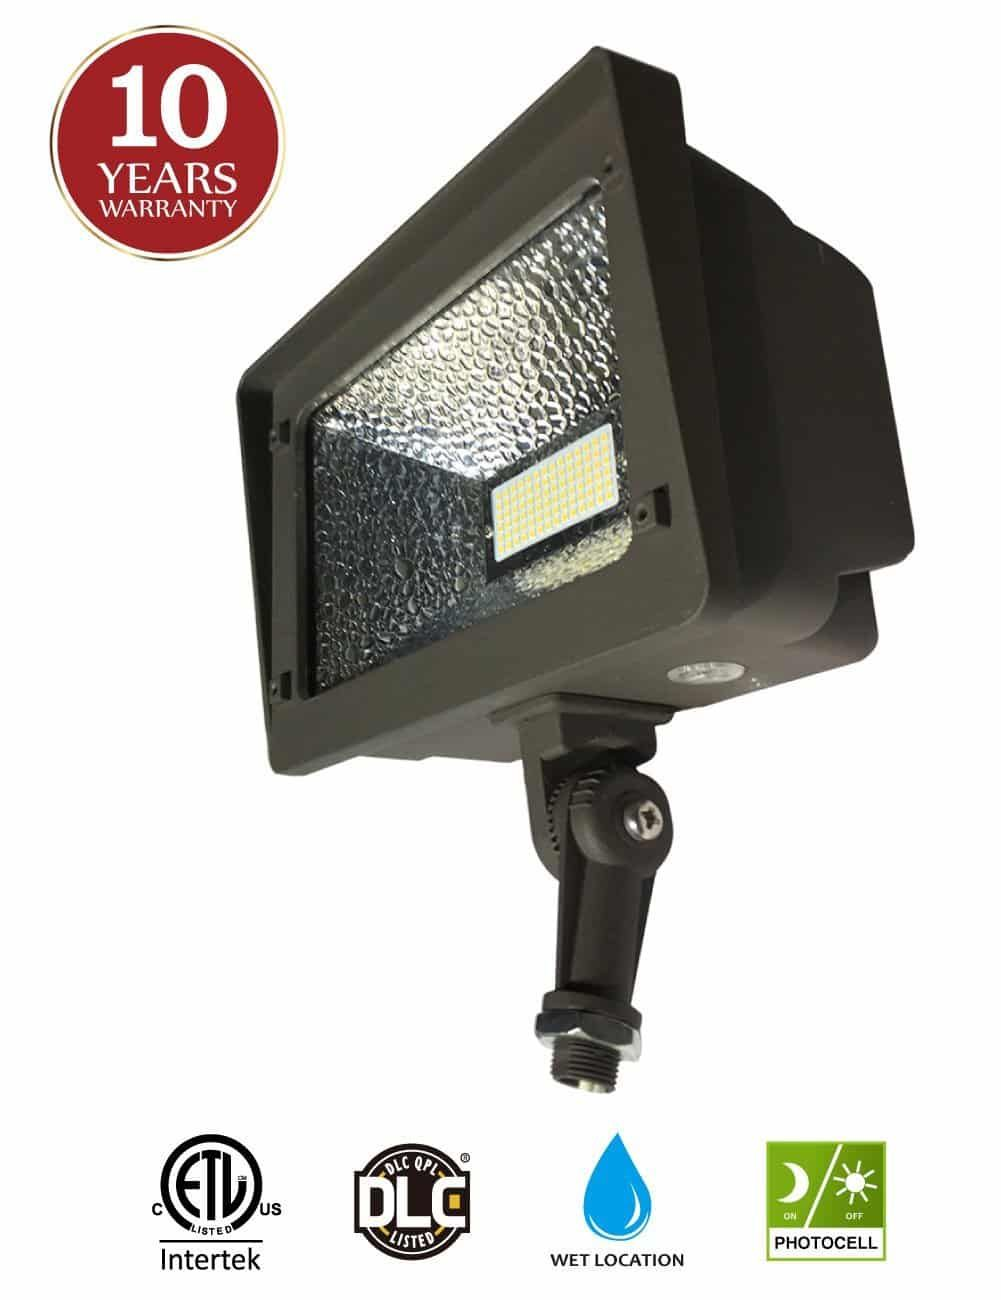 The Best Outdoor Led Flood Lights For Security And Lighting Purposes Led Flood Lights Led Flood Led Outdoor Flood Lights